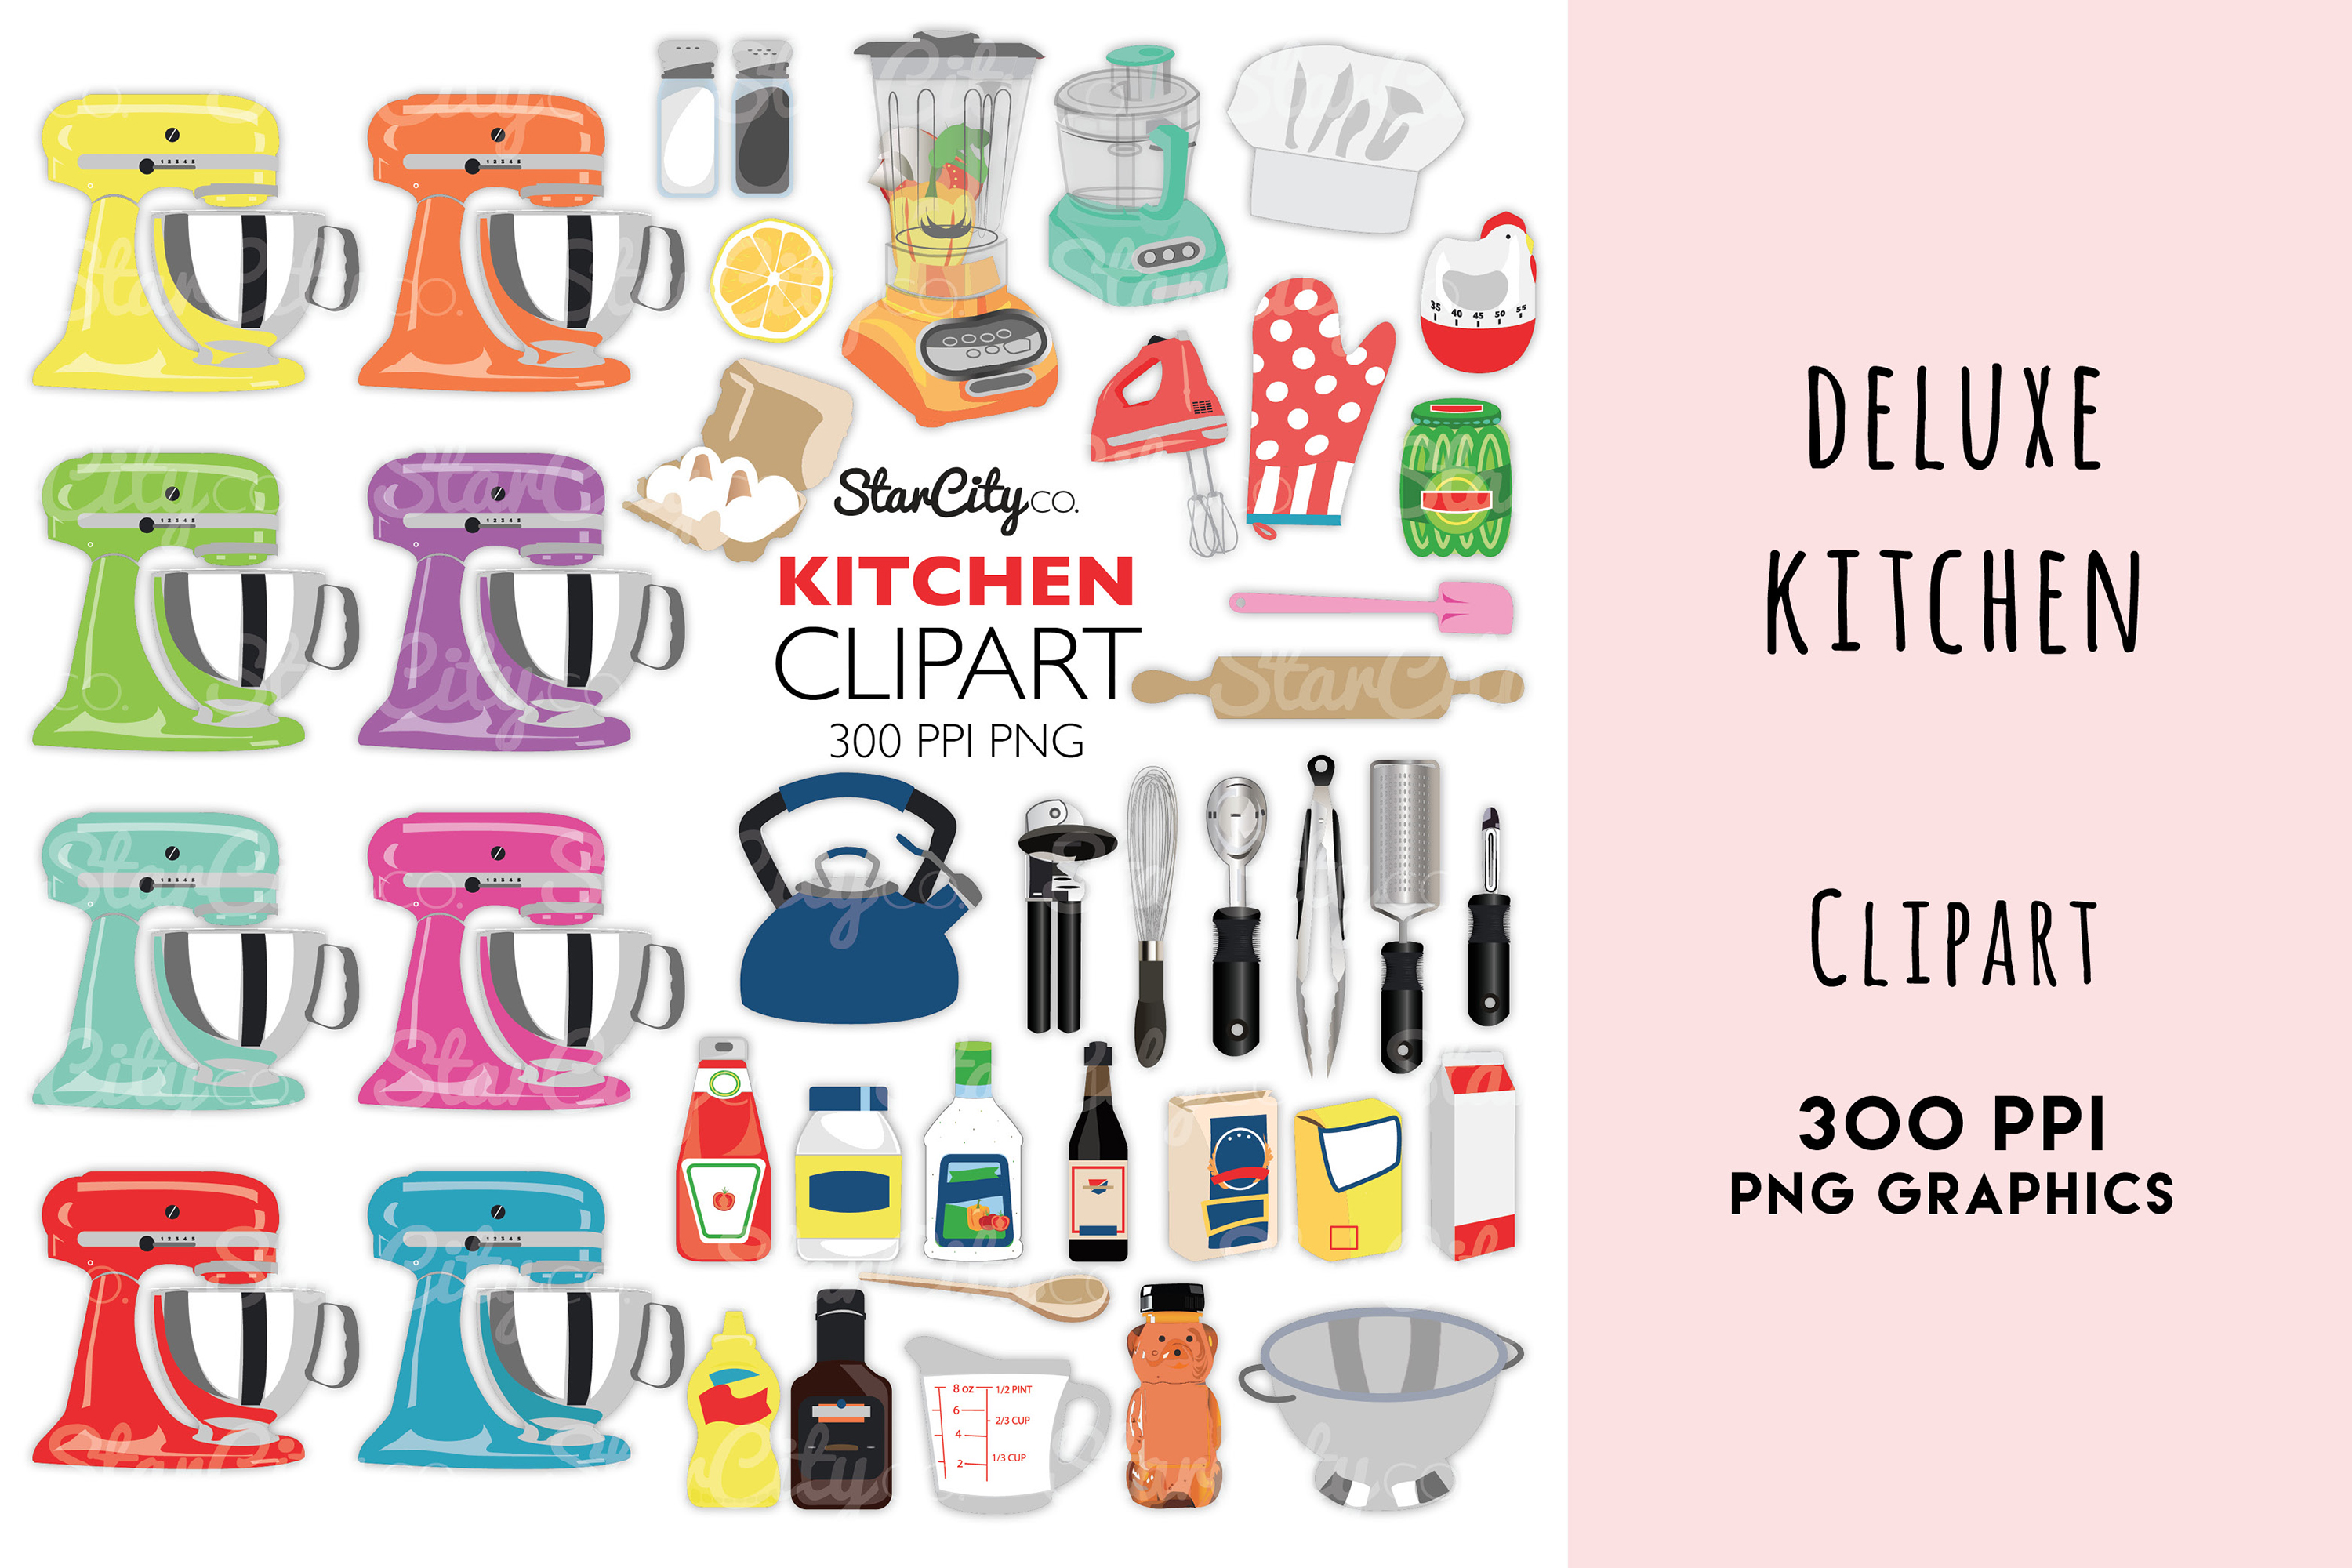 Deluxe Kitchen Clipart Graphics example image 1